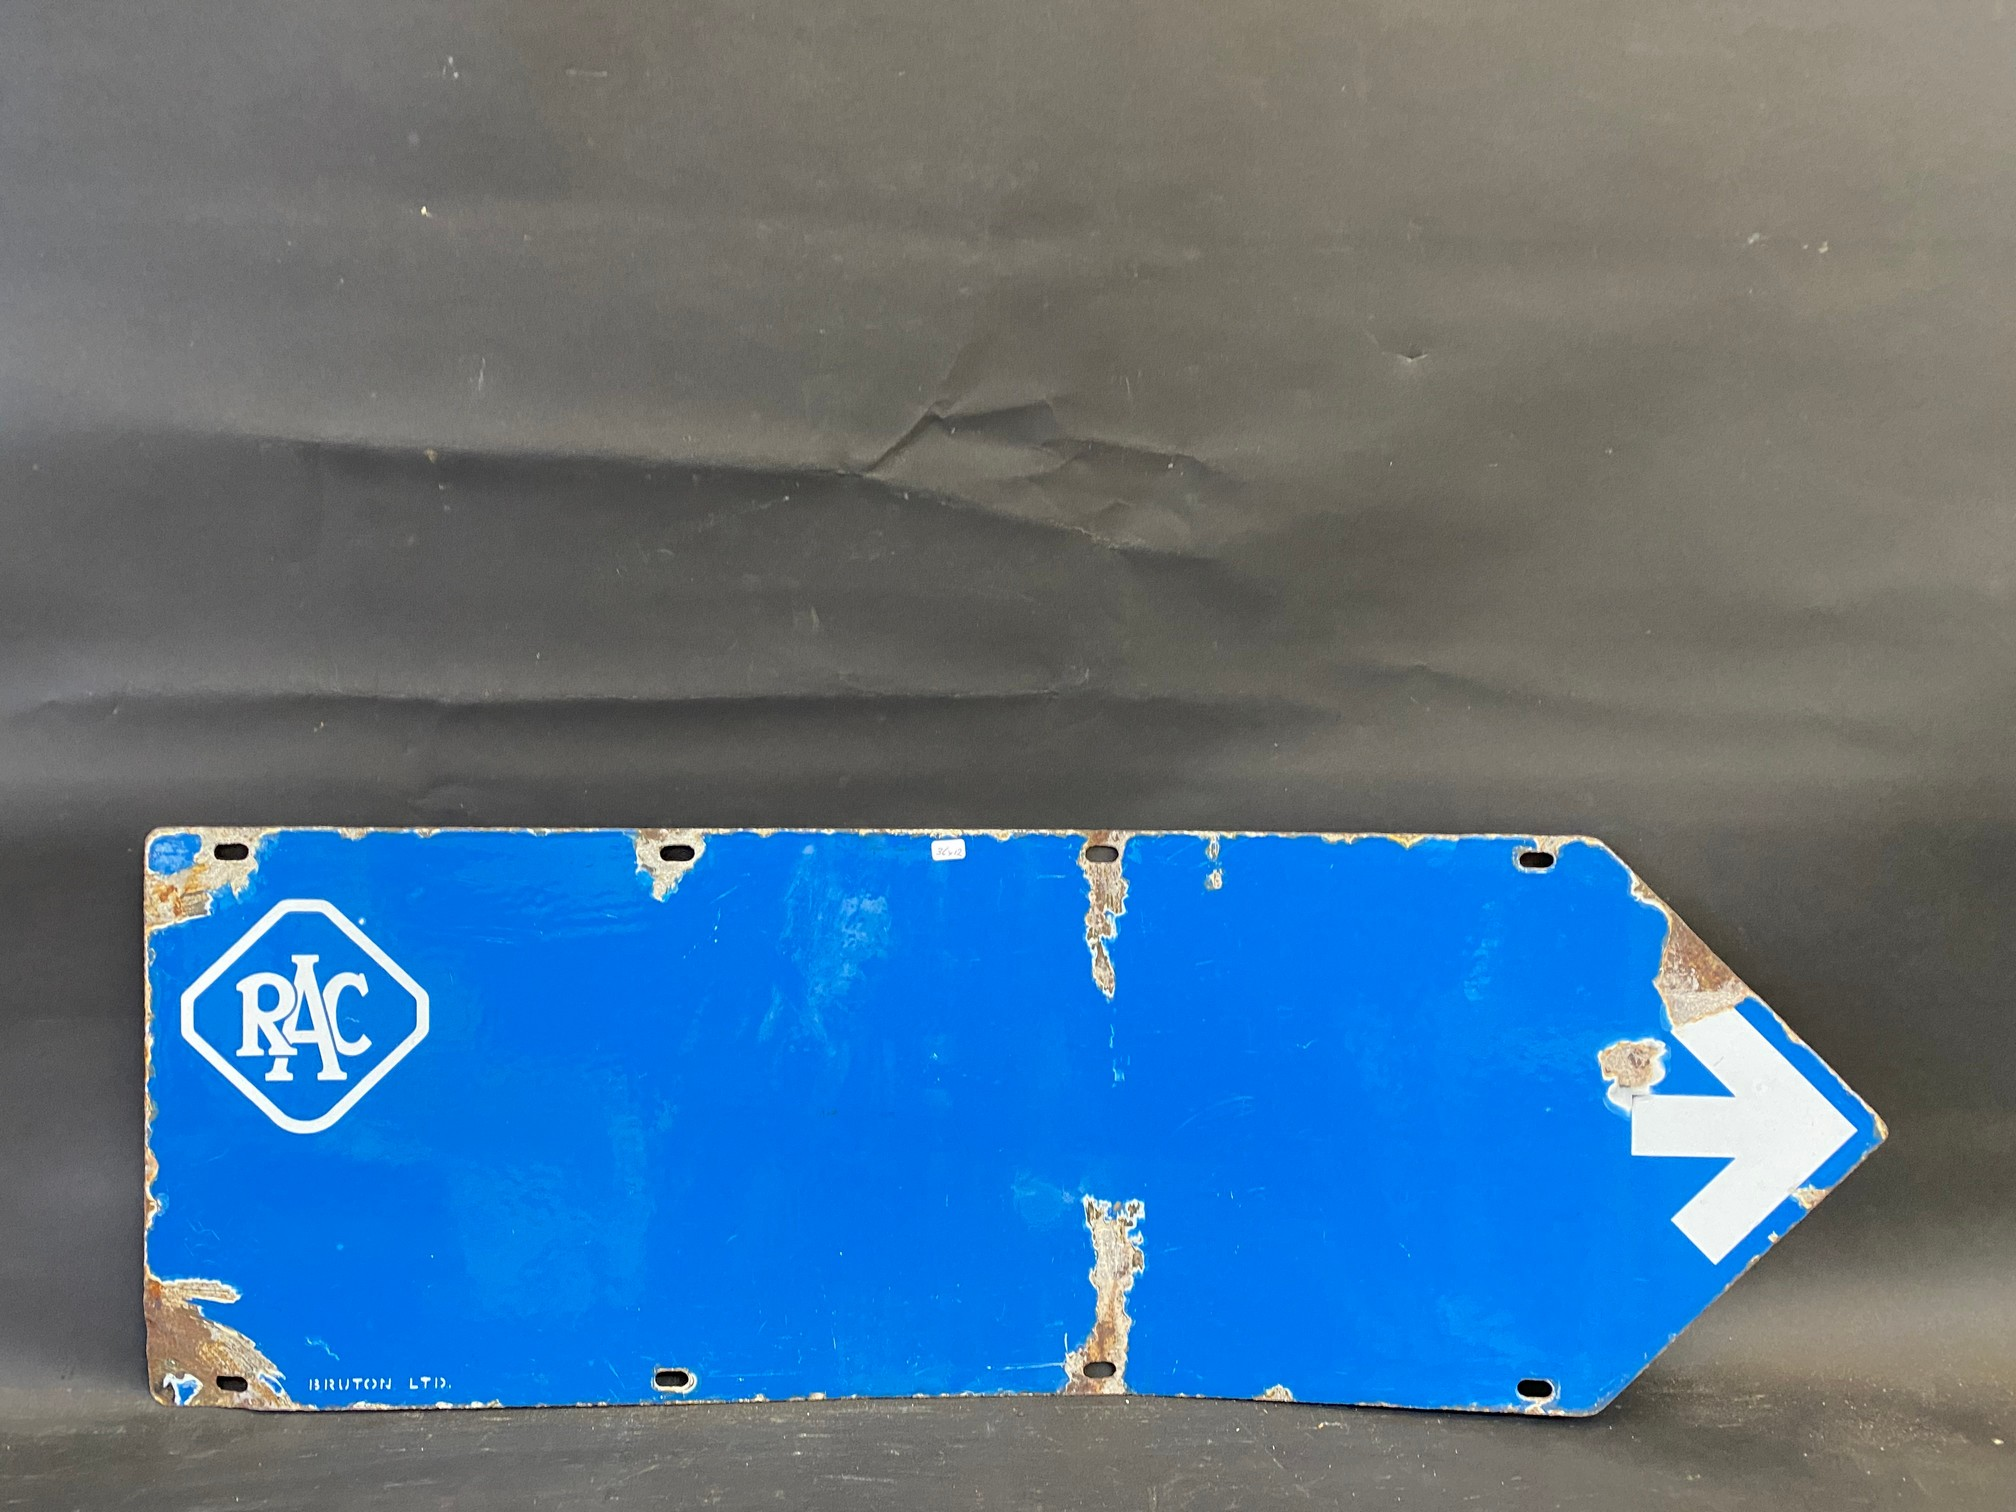 """An RAC blue and white double sided directional arrow sign by Bruton, 353/4 x 12"""". - Image 4 of 4"""